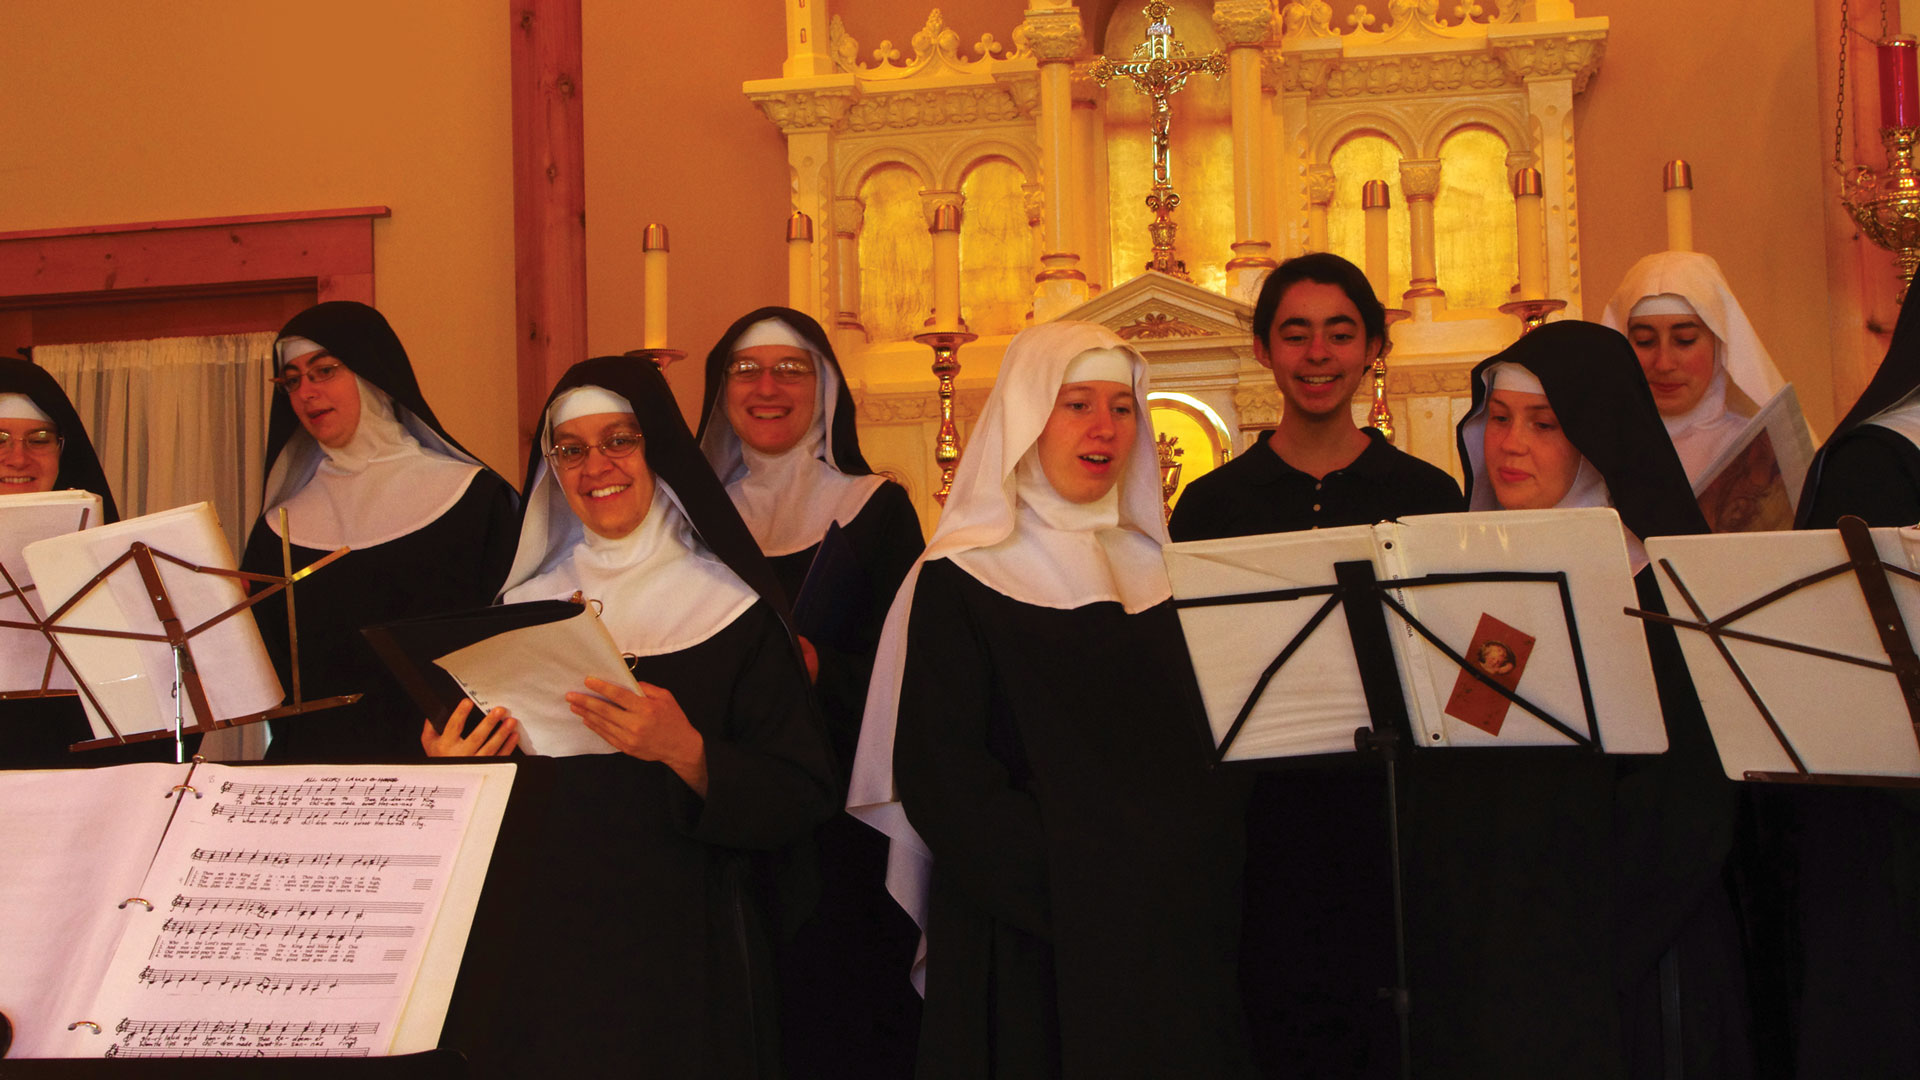 The Music of Lent at Ephesus